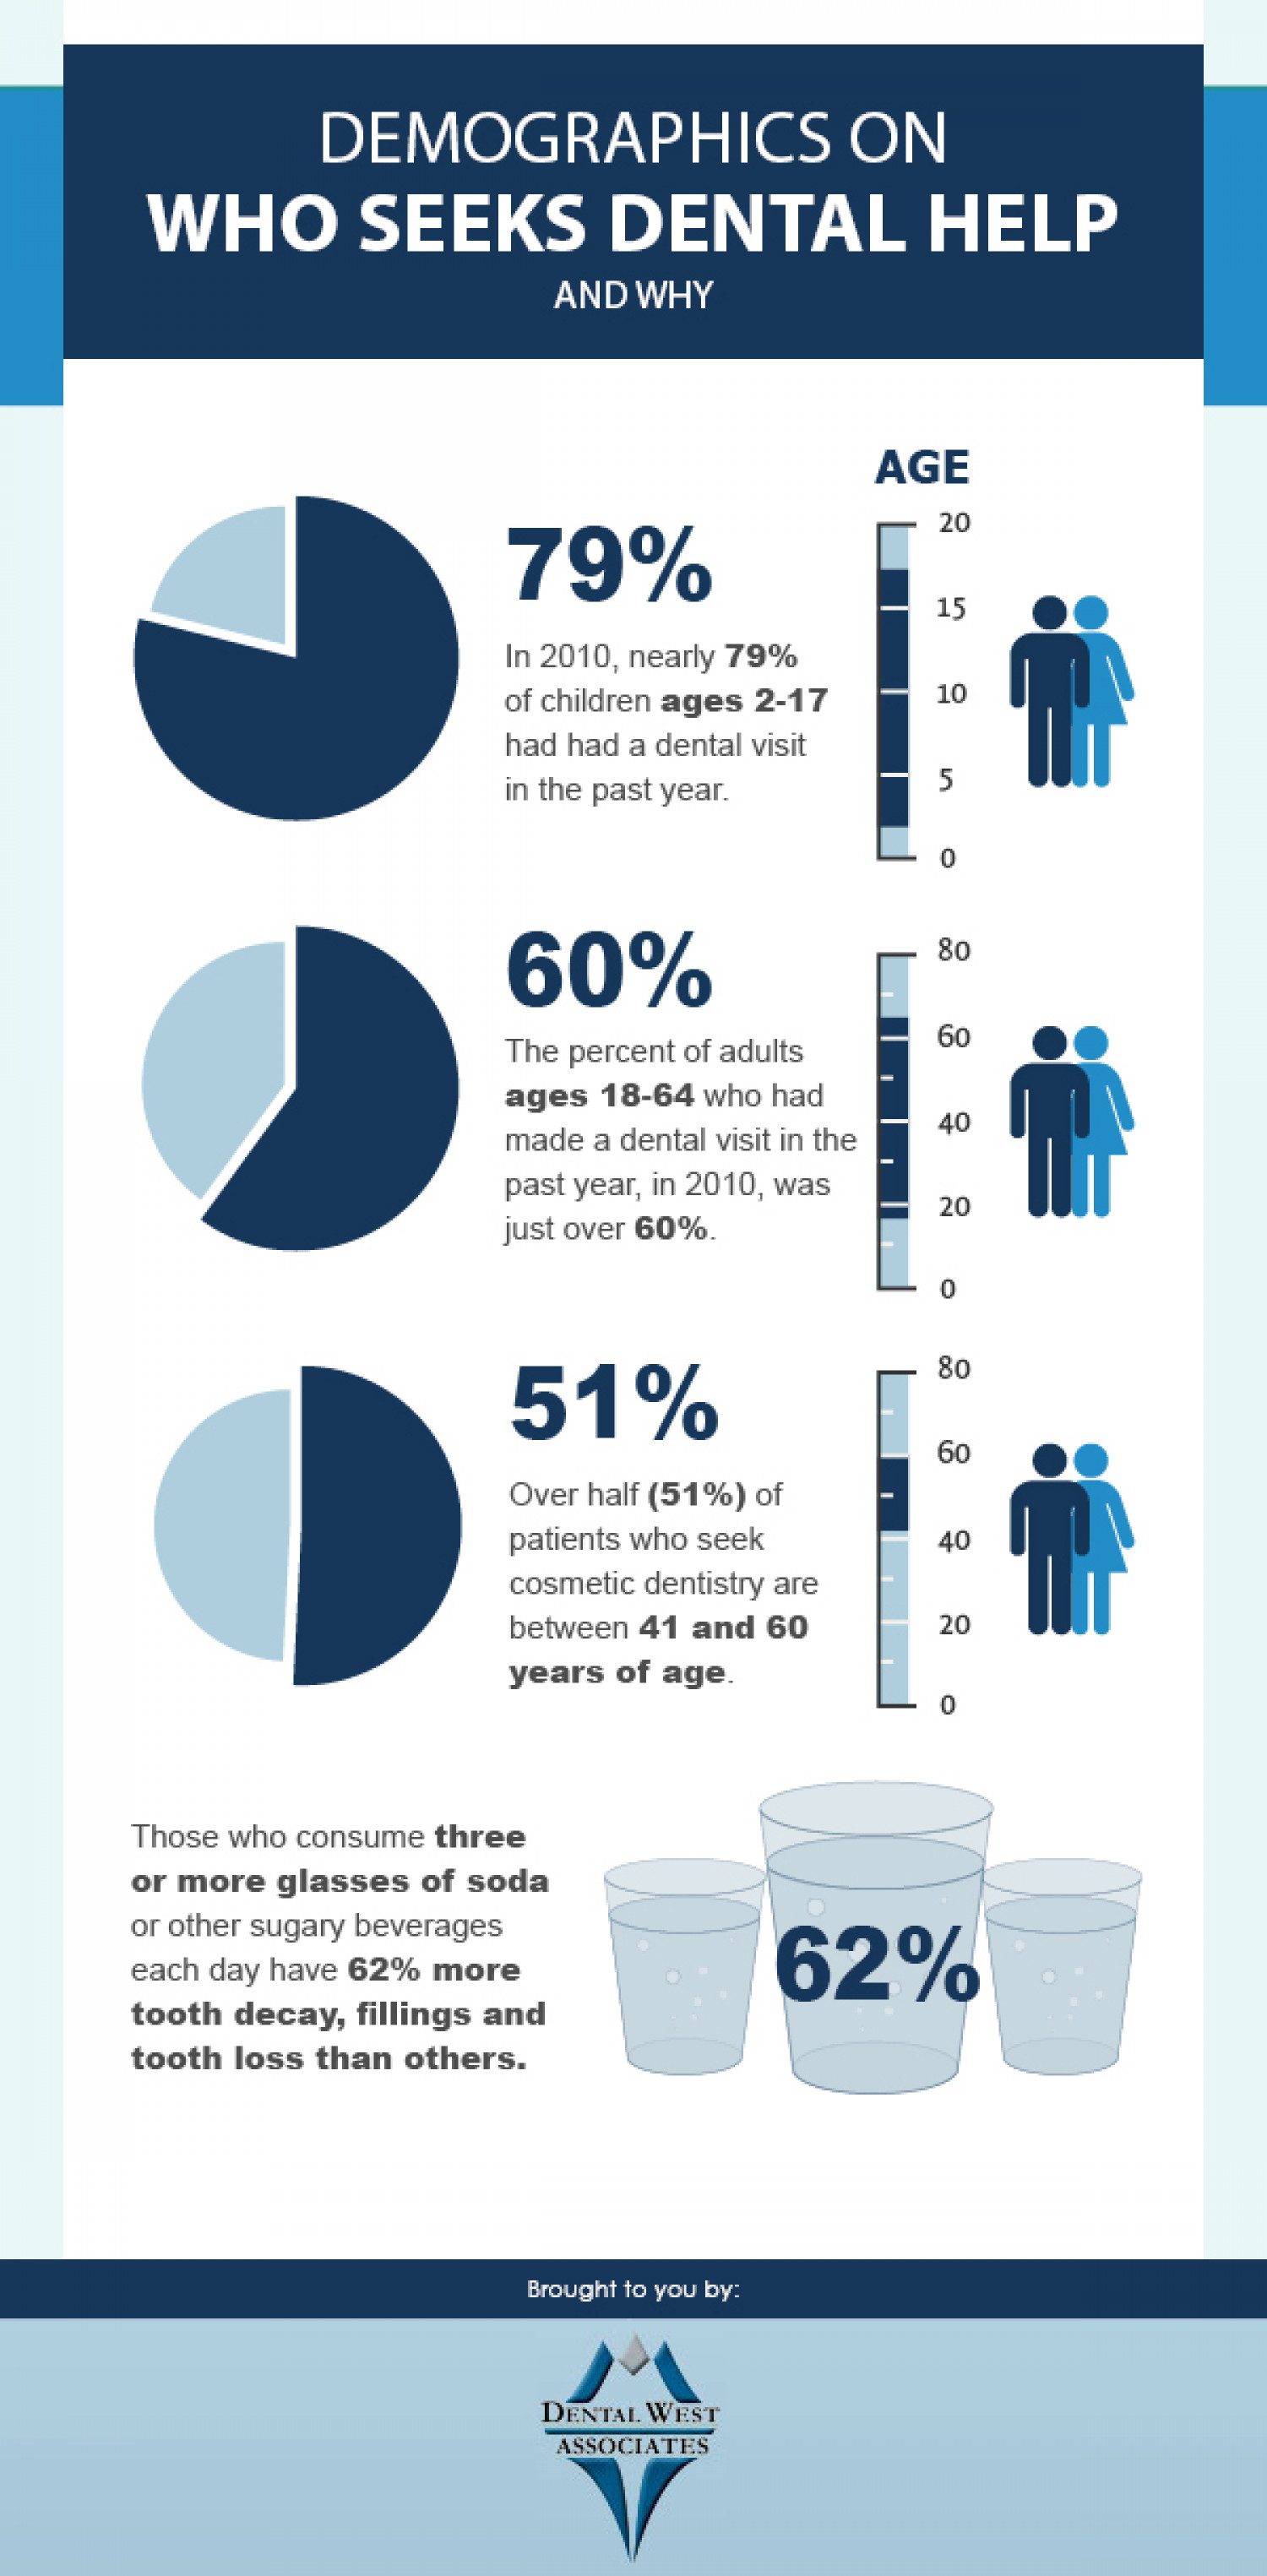 Demographics On Who Seeks Dental Help And Why Infographic